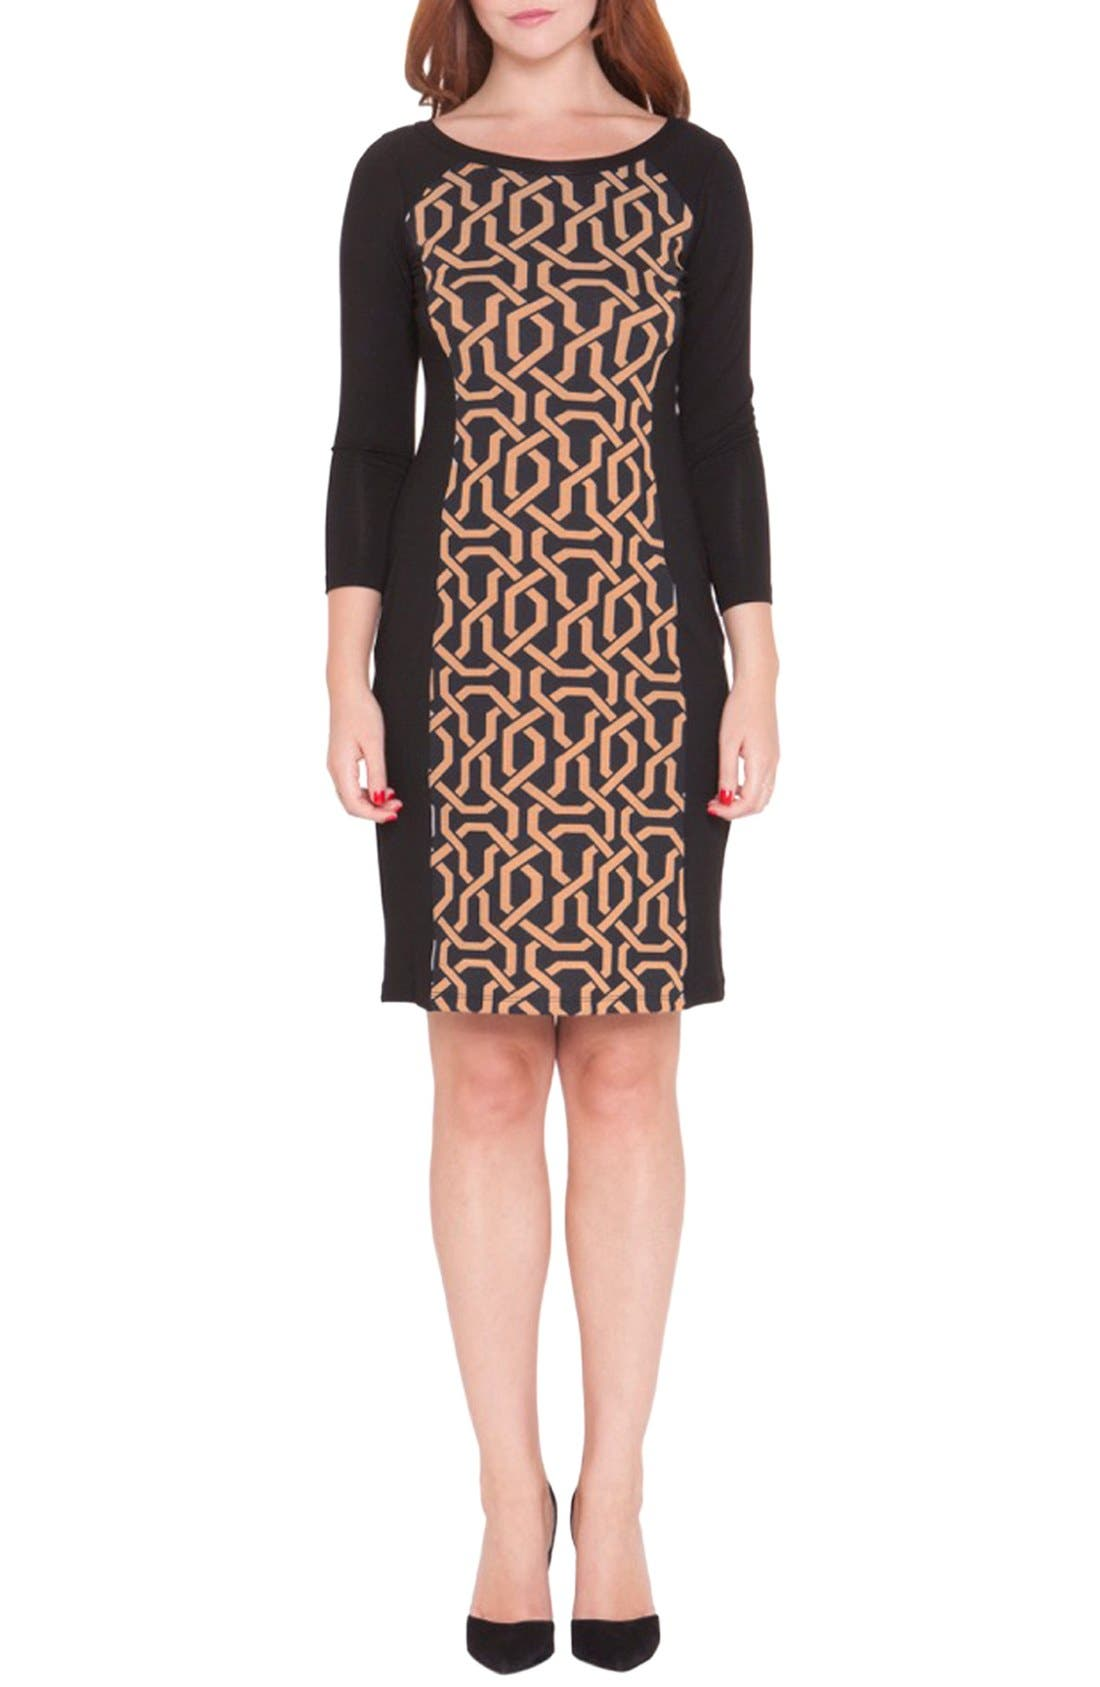 Alternate Image 1 Selected - Olian Graphic Print Maternity Dress